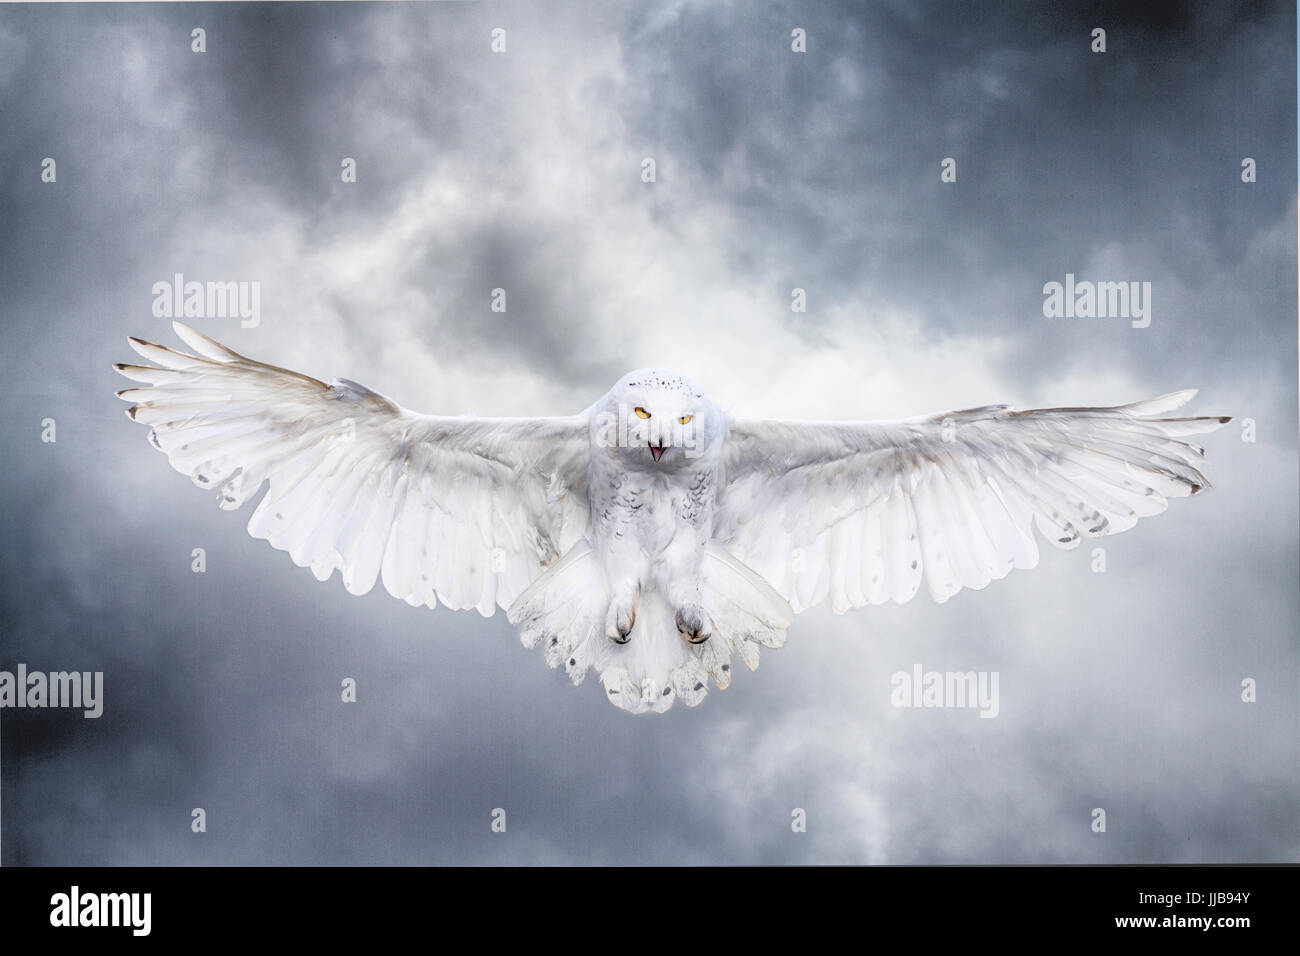 Snowy owl in flight against a stormy sky - Stock Image